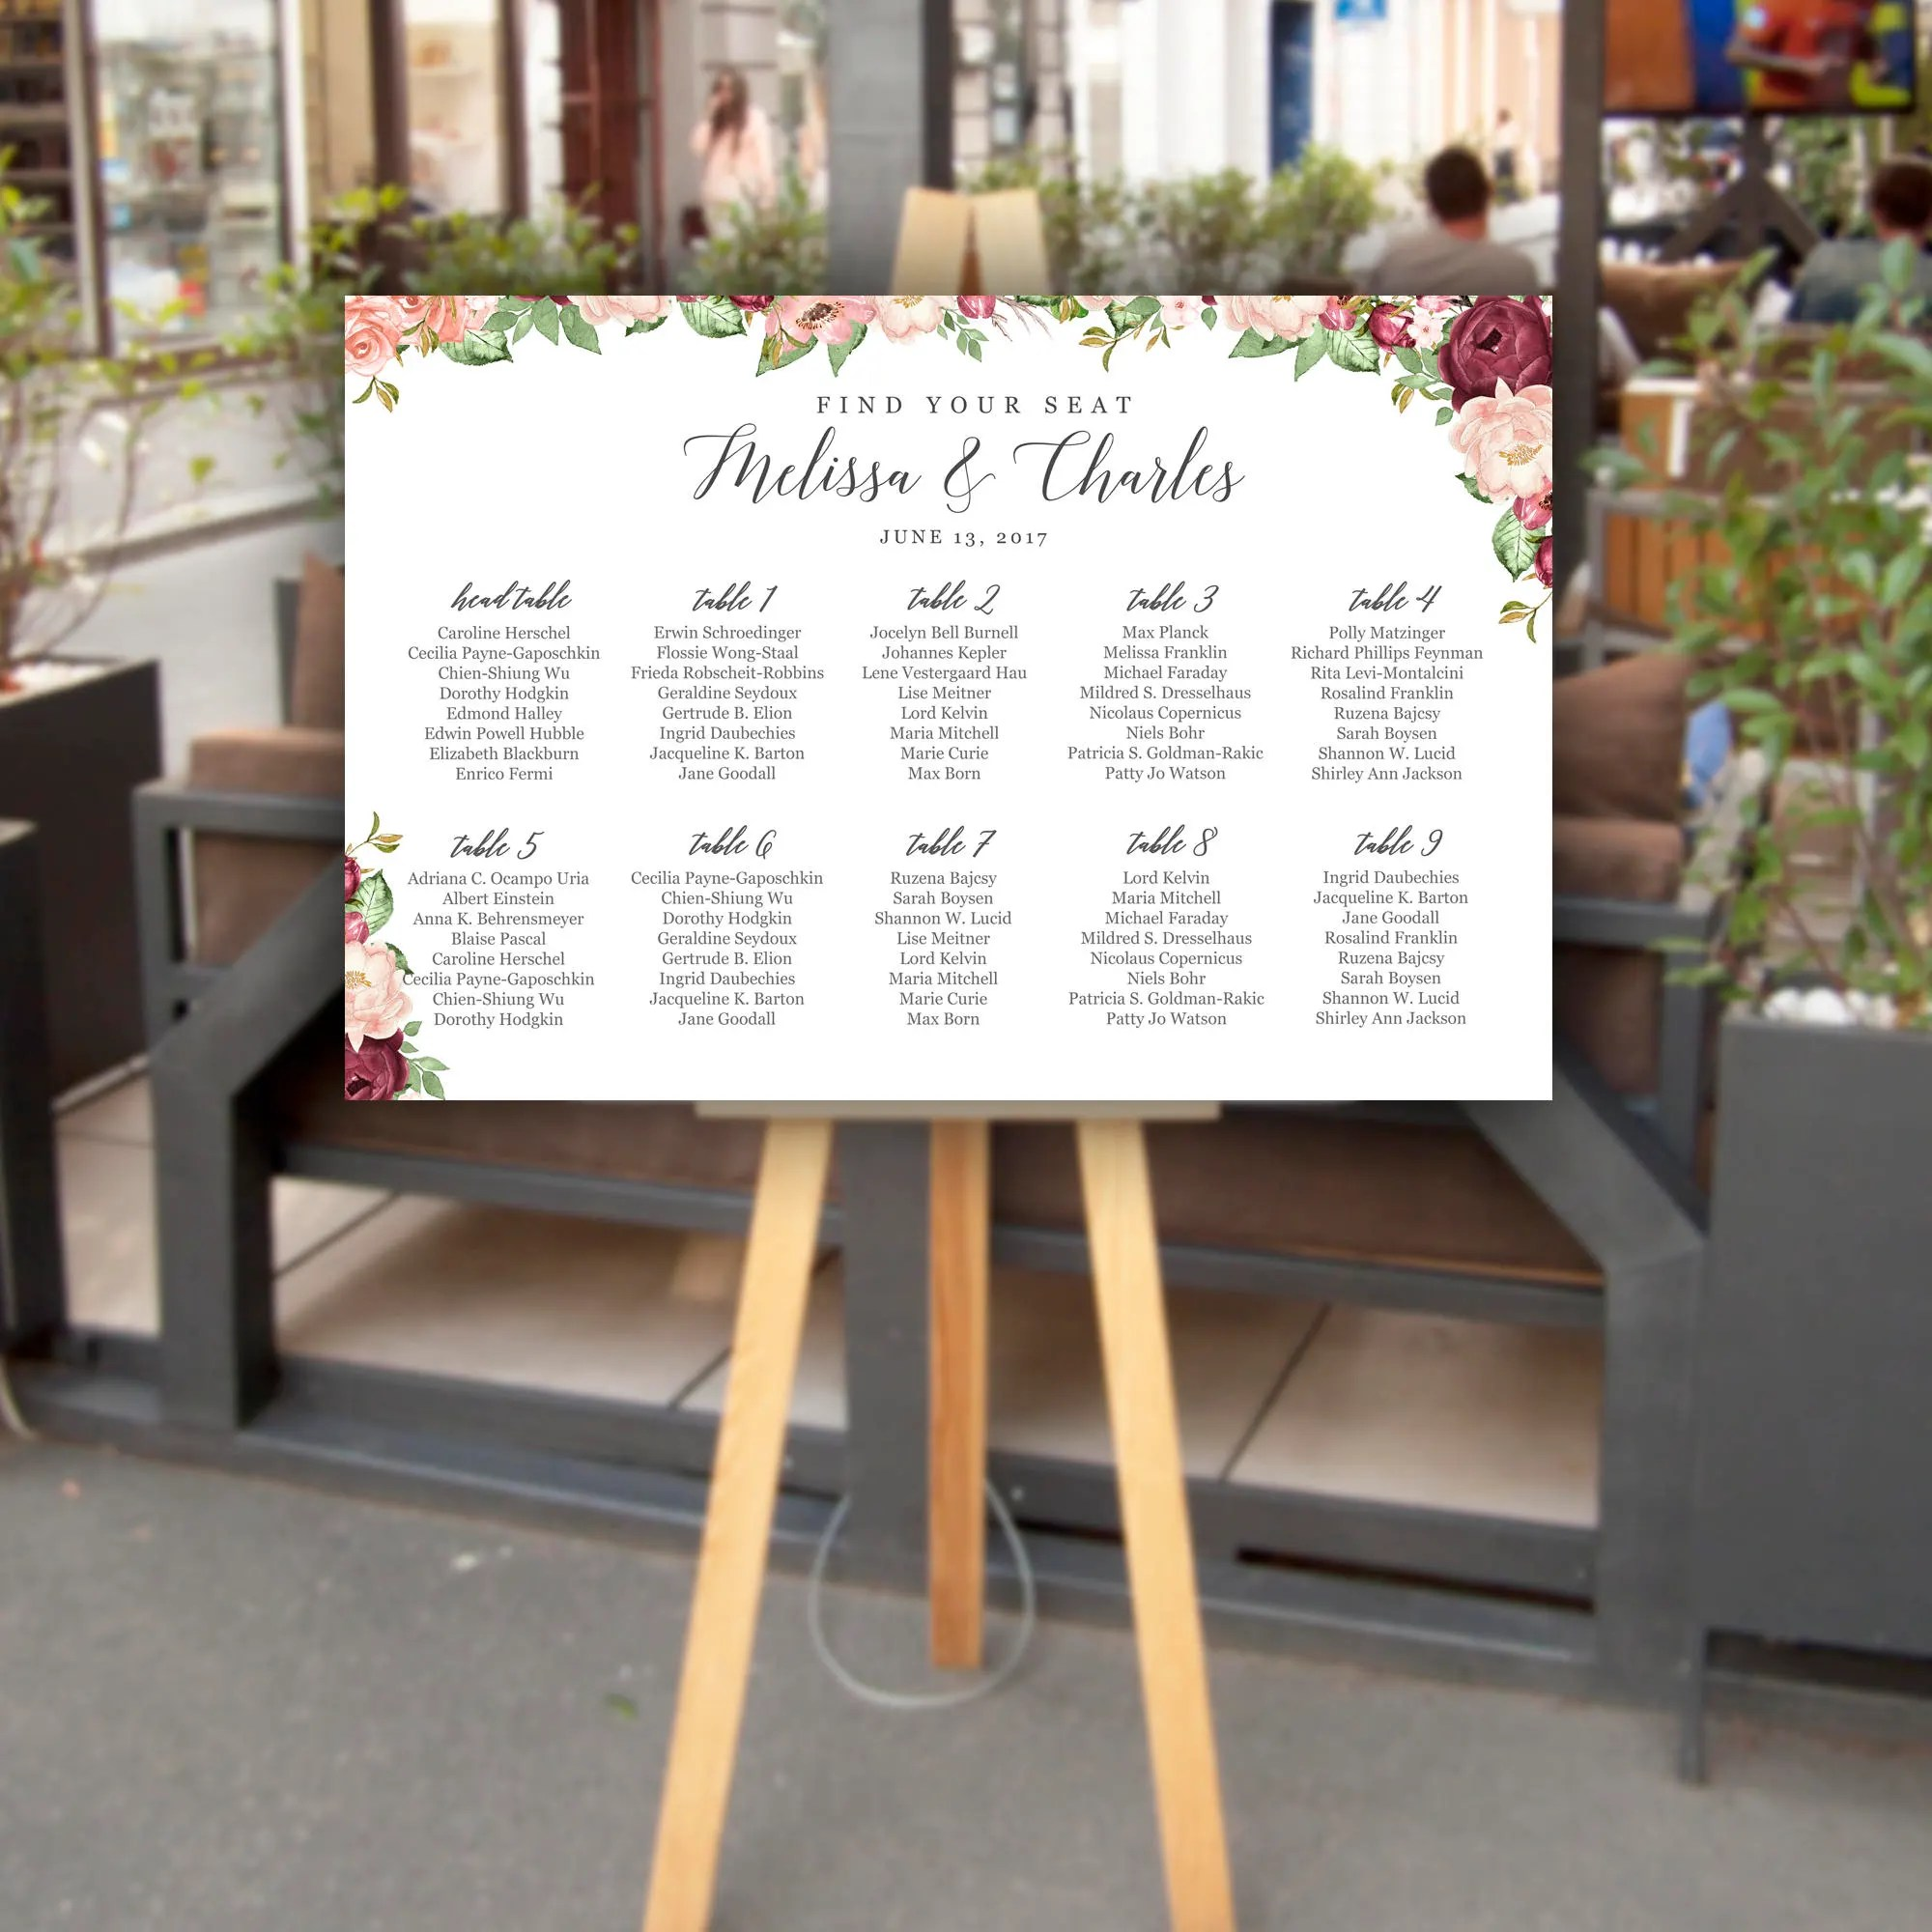 Customized printed wedding seating chart poster burgundy flowers digital personalized also templates etsy ca rh